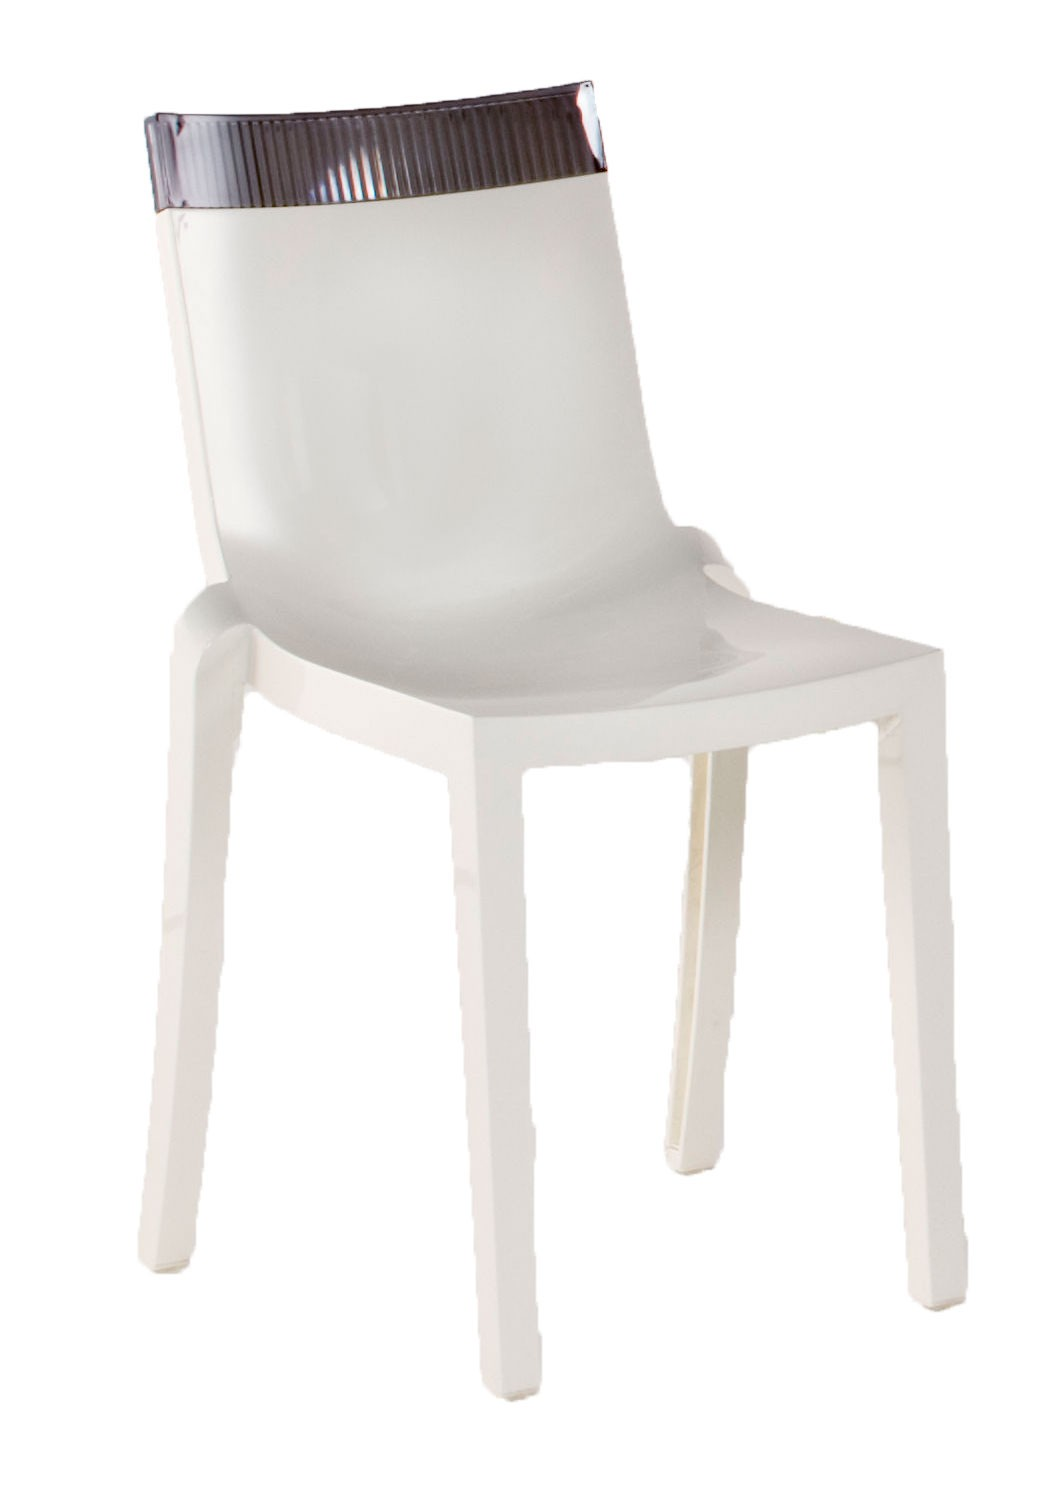 Chaises Masters Soldes Chaise Kartell Solde. Interesting Chaise Kartell Pas Cher